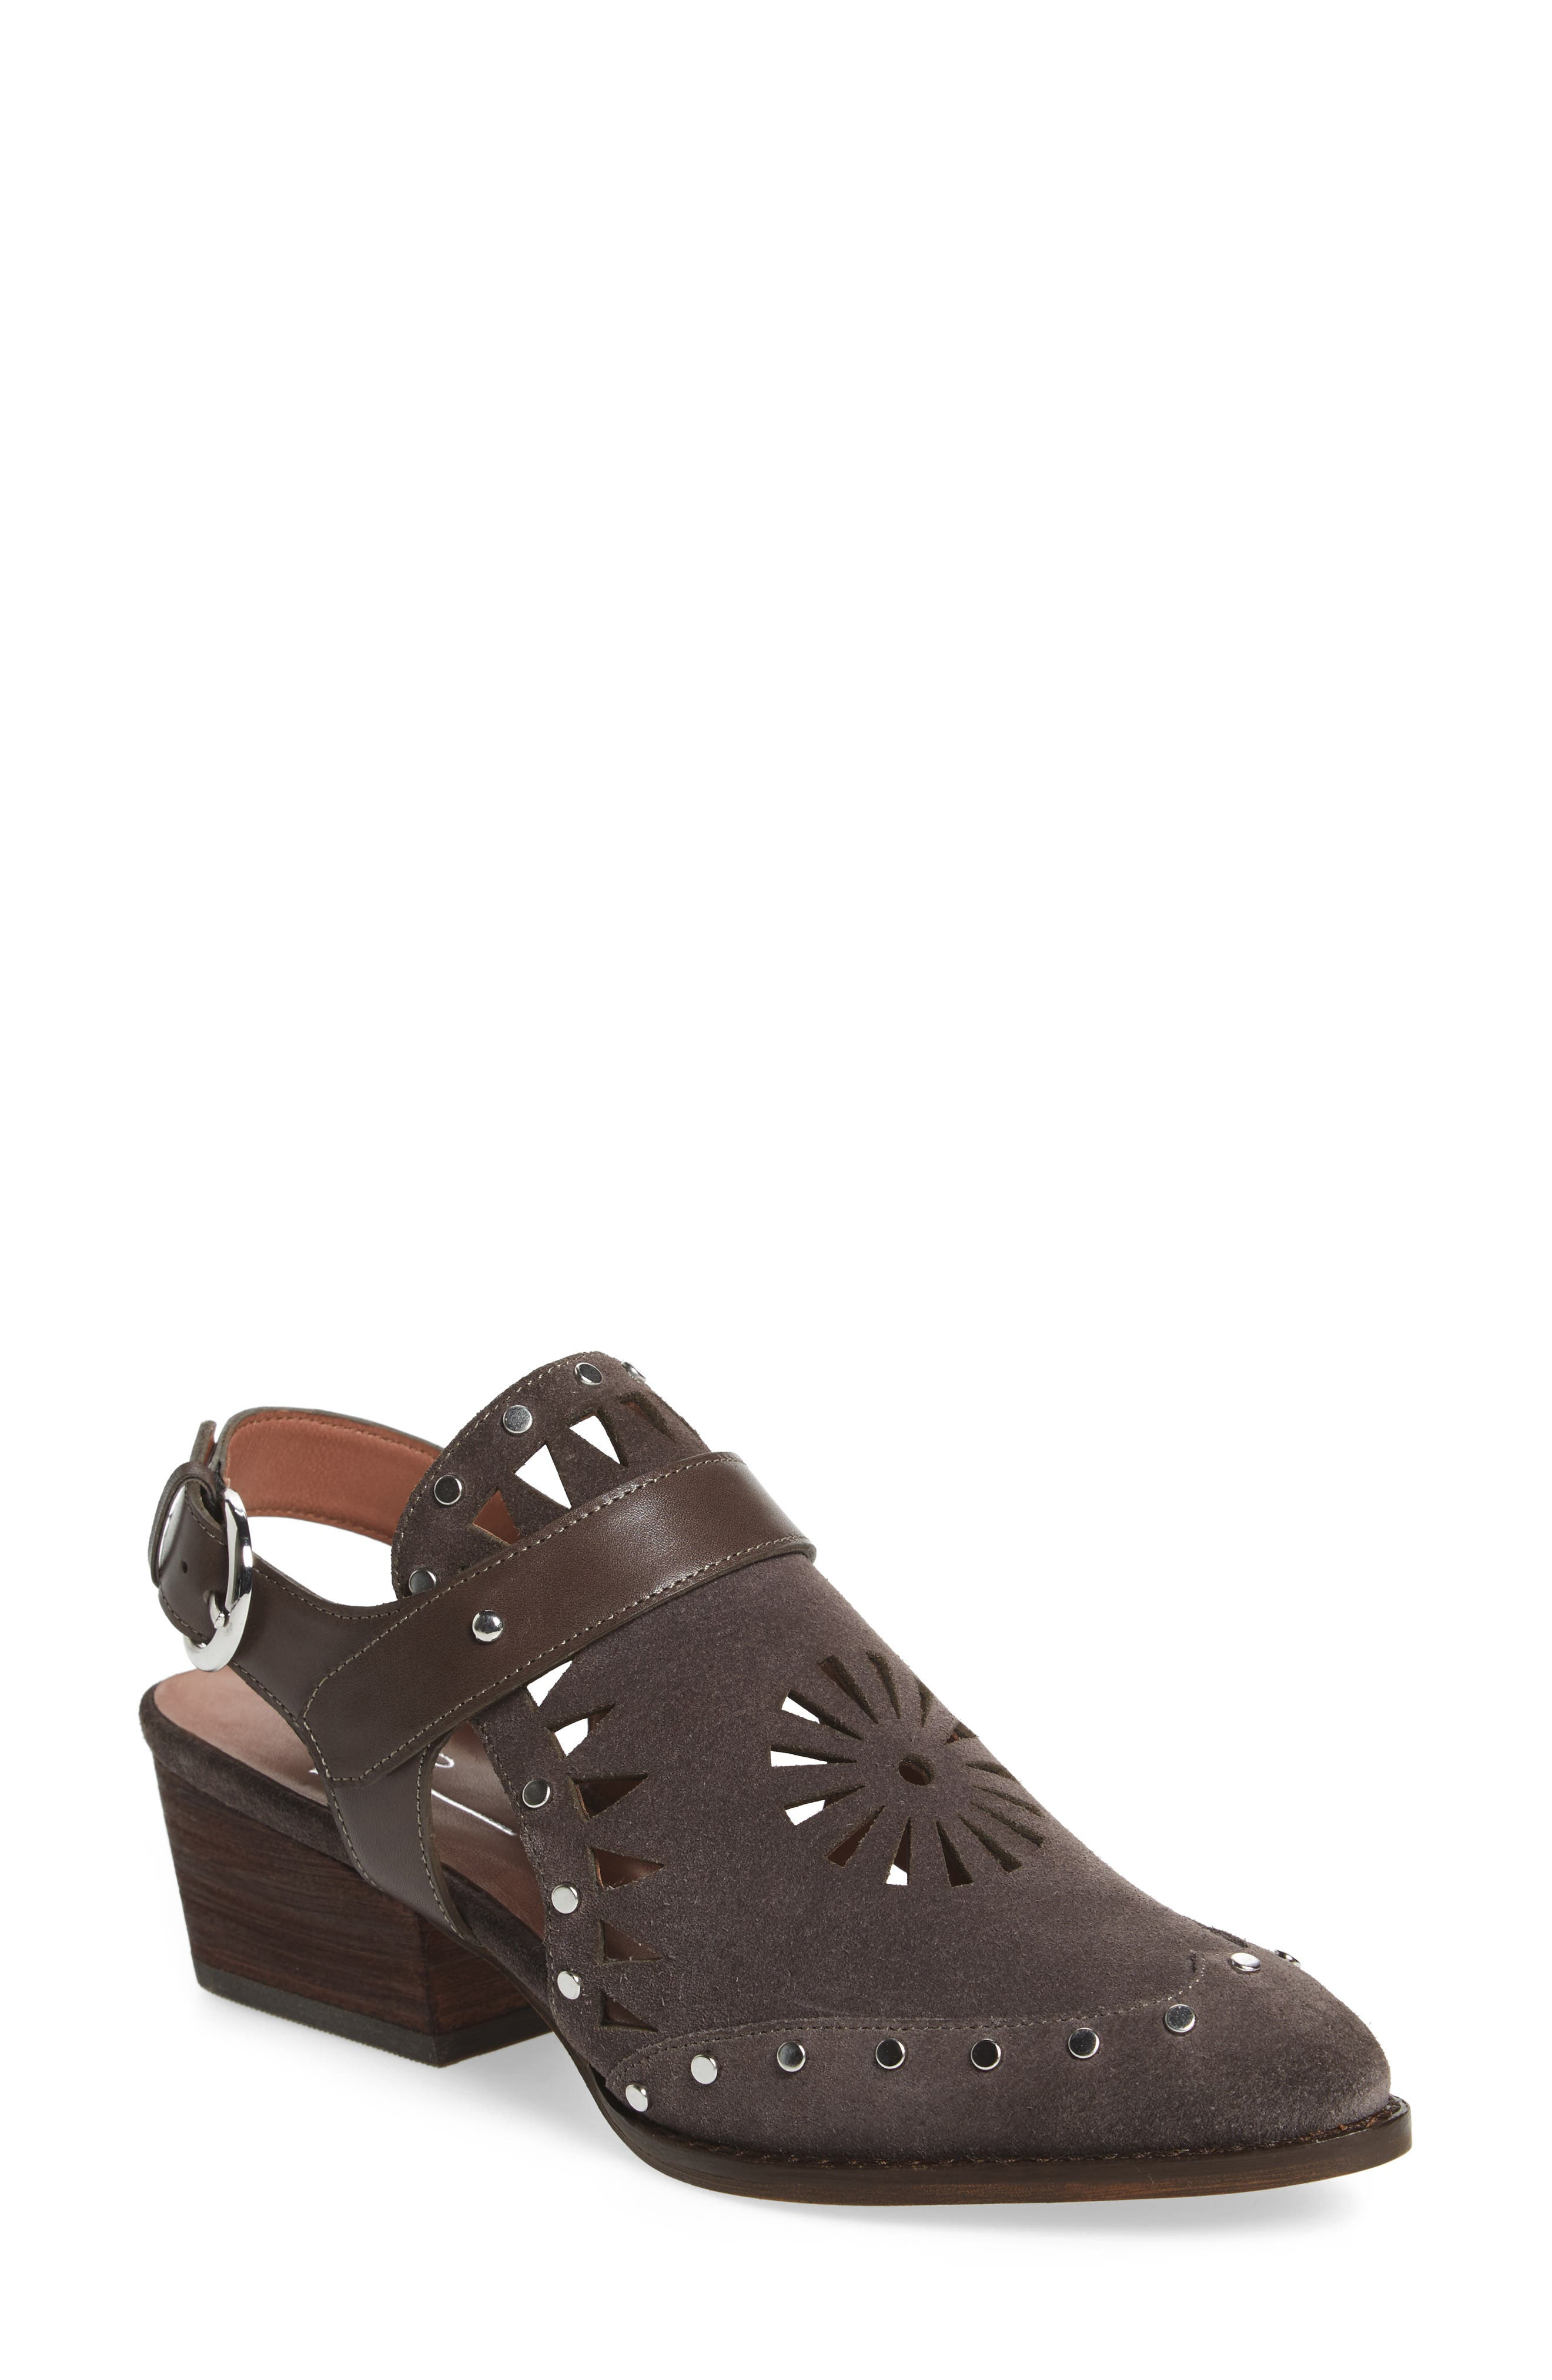 Whitney Bootie,                             Main thumbnail 1, color,                             Ash Suede